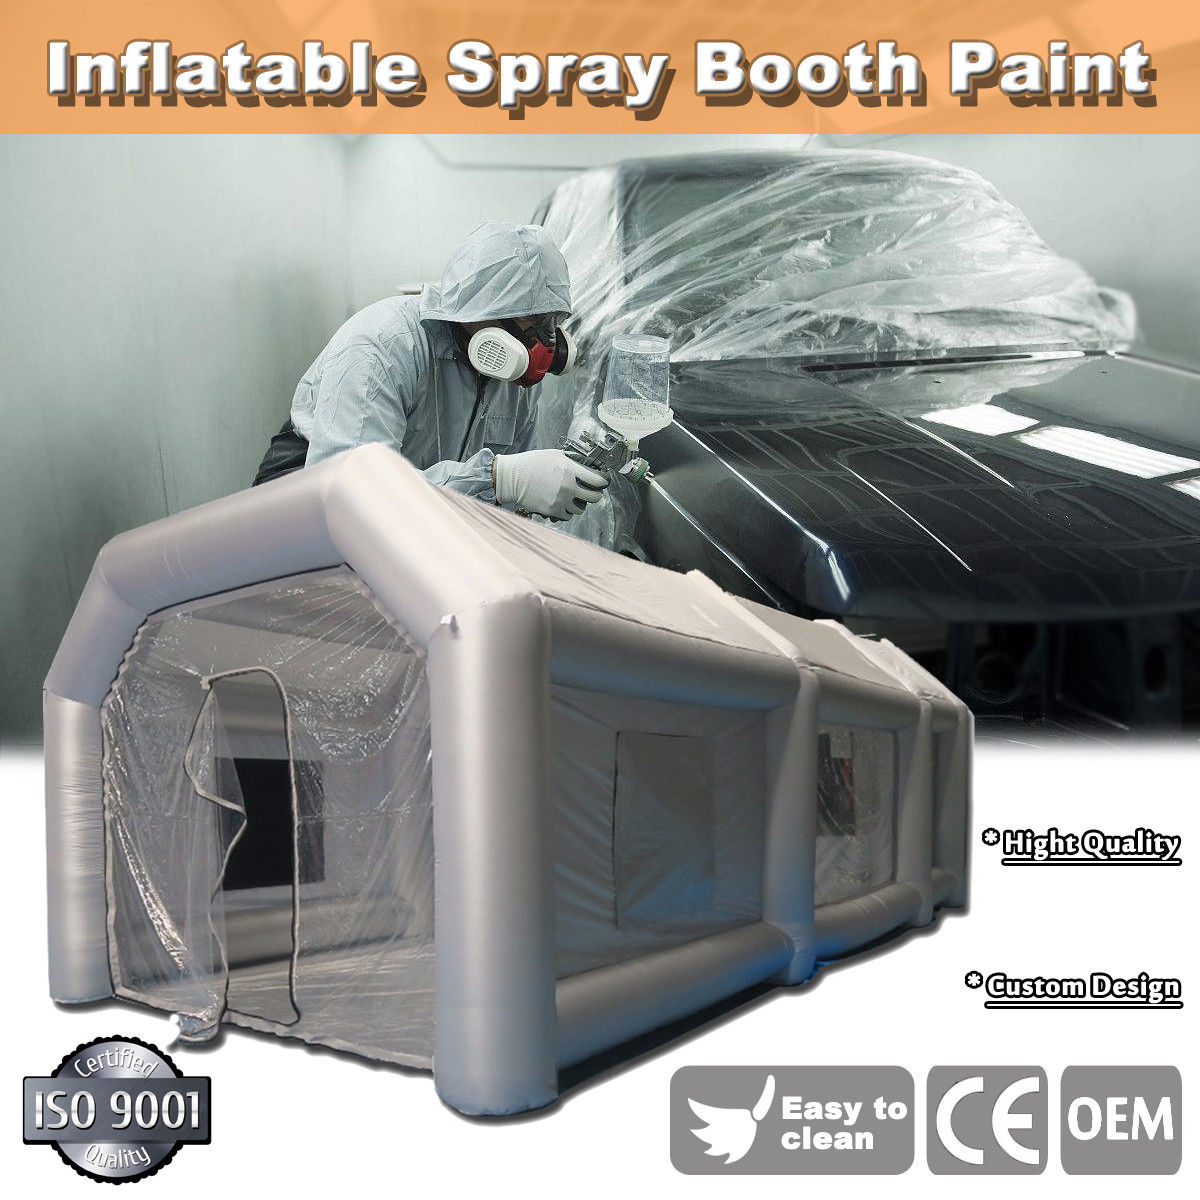 20x10x8Ft Inflatable Booth Custom Tent Car + Filtration System Grey